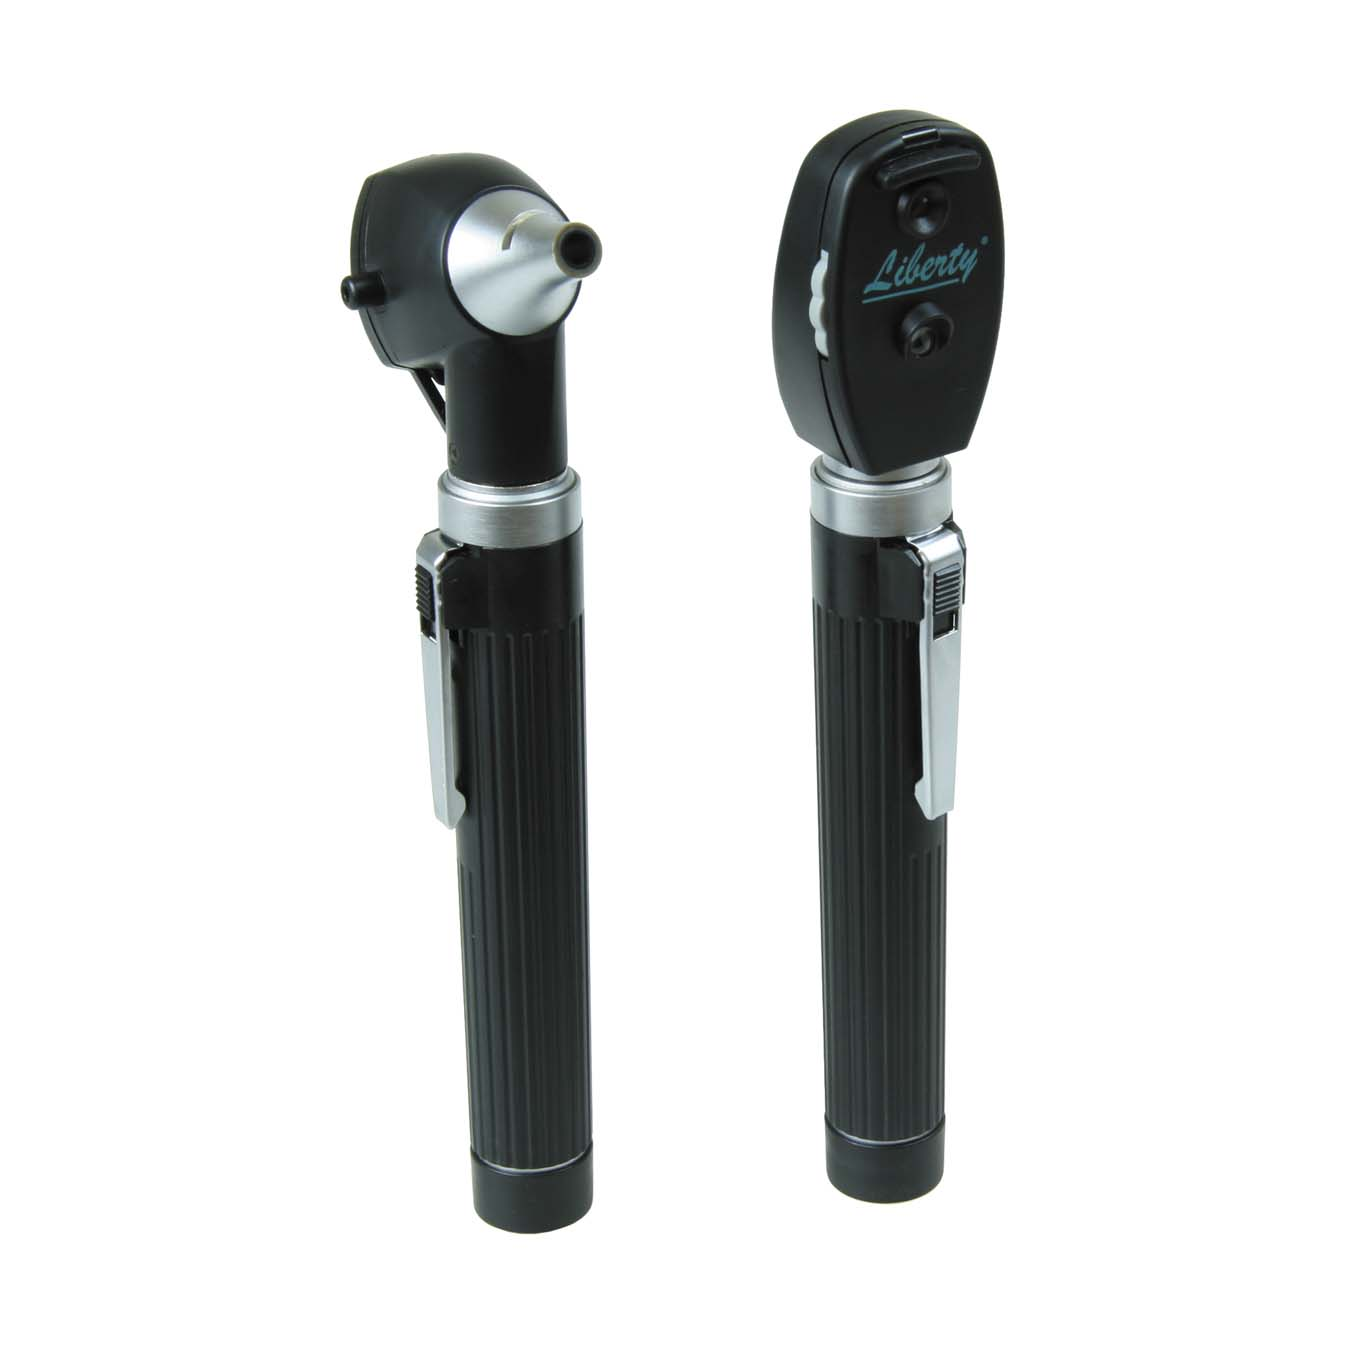 LOTOPMSET_1_Liberty-Mini-Otoscope-Ophthalmoscope-Set